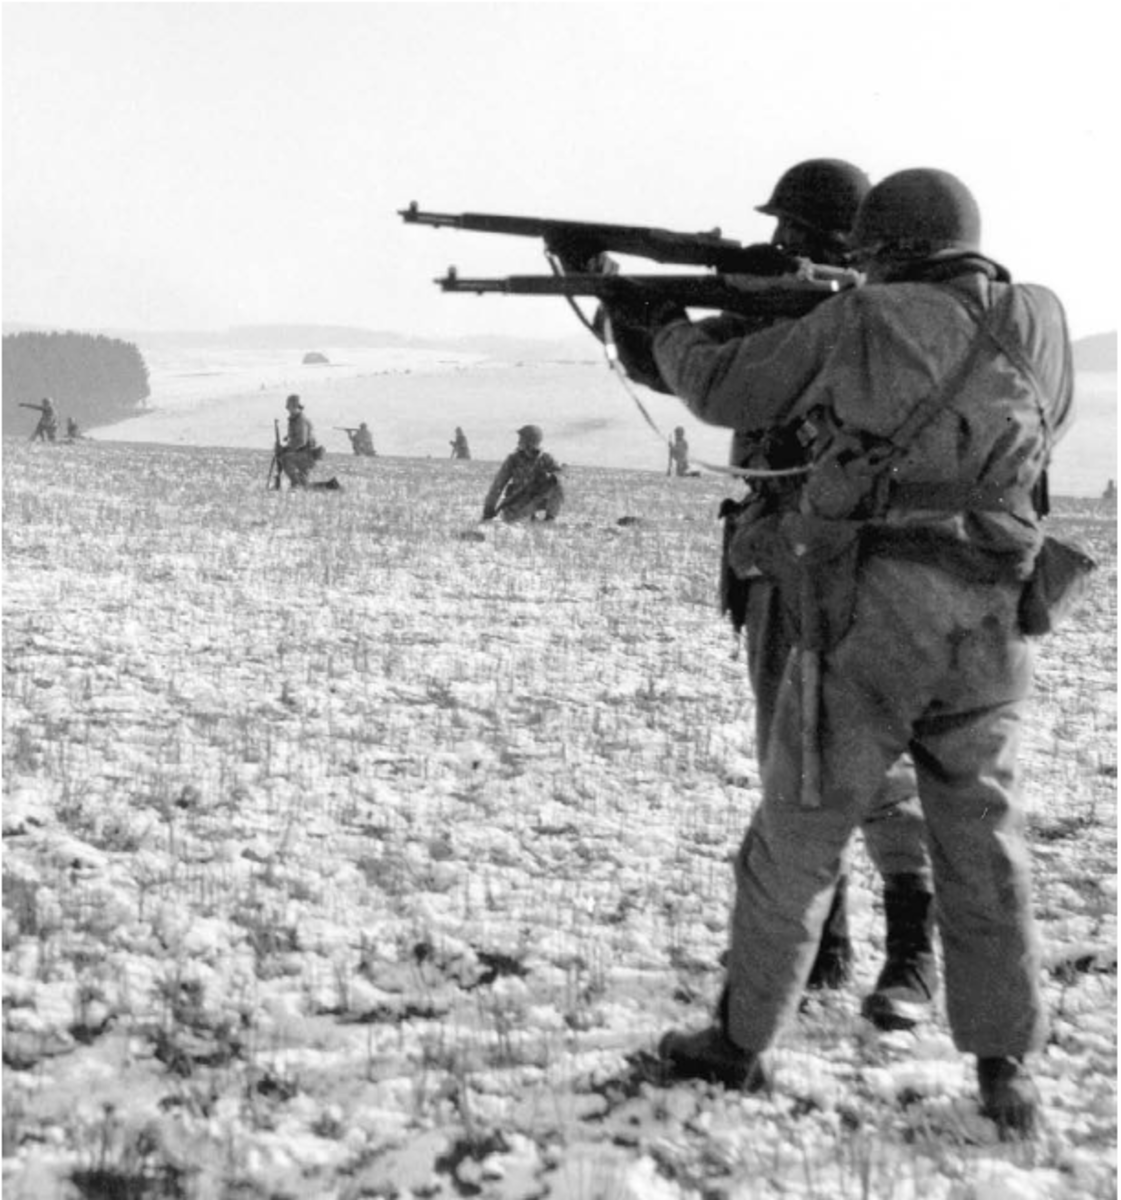 Infantry men of the Third Army battling to releive the men of the 101st Airborne in Bastogne.